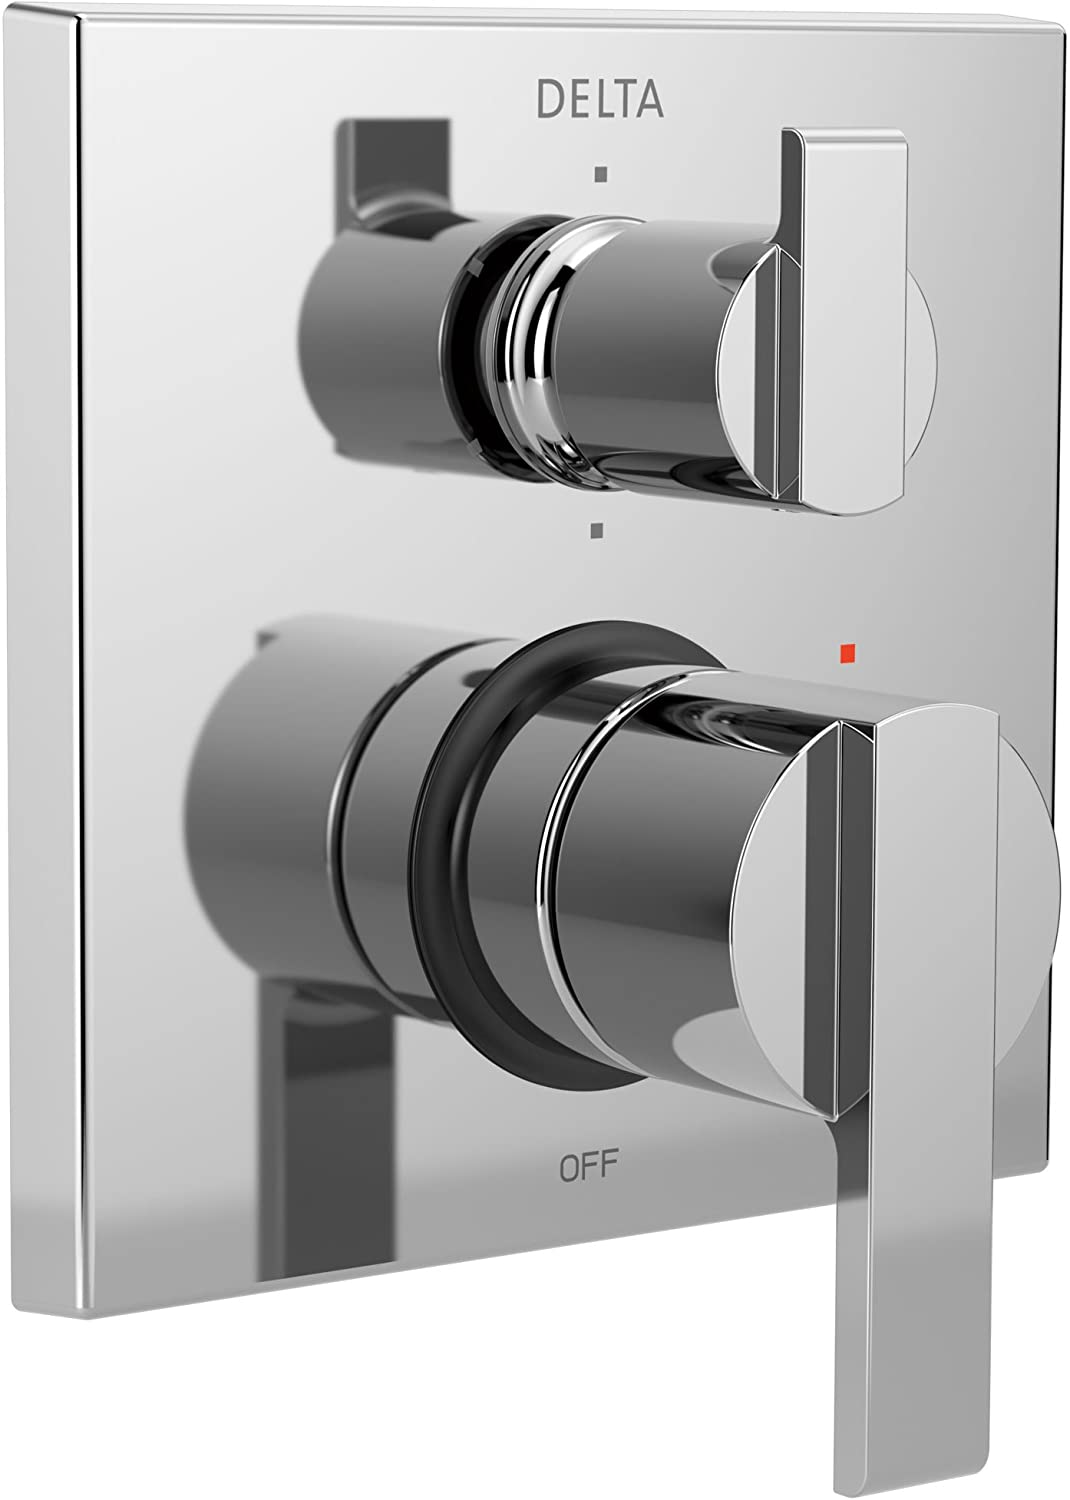 Delta Ara Chrome Angular Modern Monitor 14 Shower Faucet Control Handle with 6-Setting Integrated Diverter Includes Trim Kit and Valve without Stops D2194V